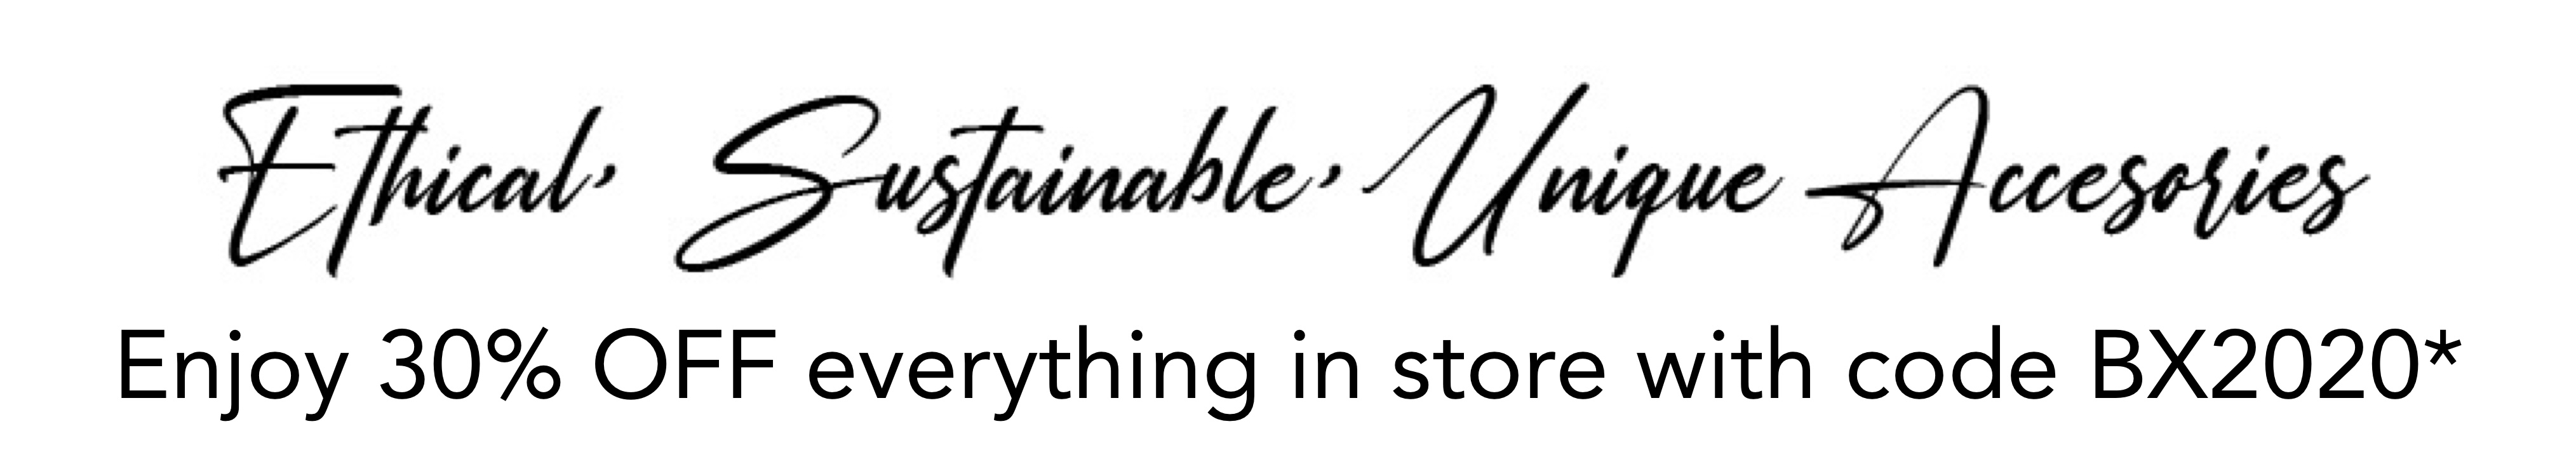 ethical-sustainable-sale-banner.jpg